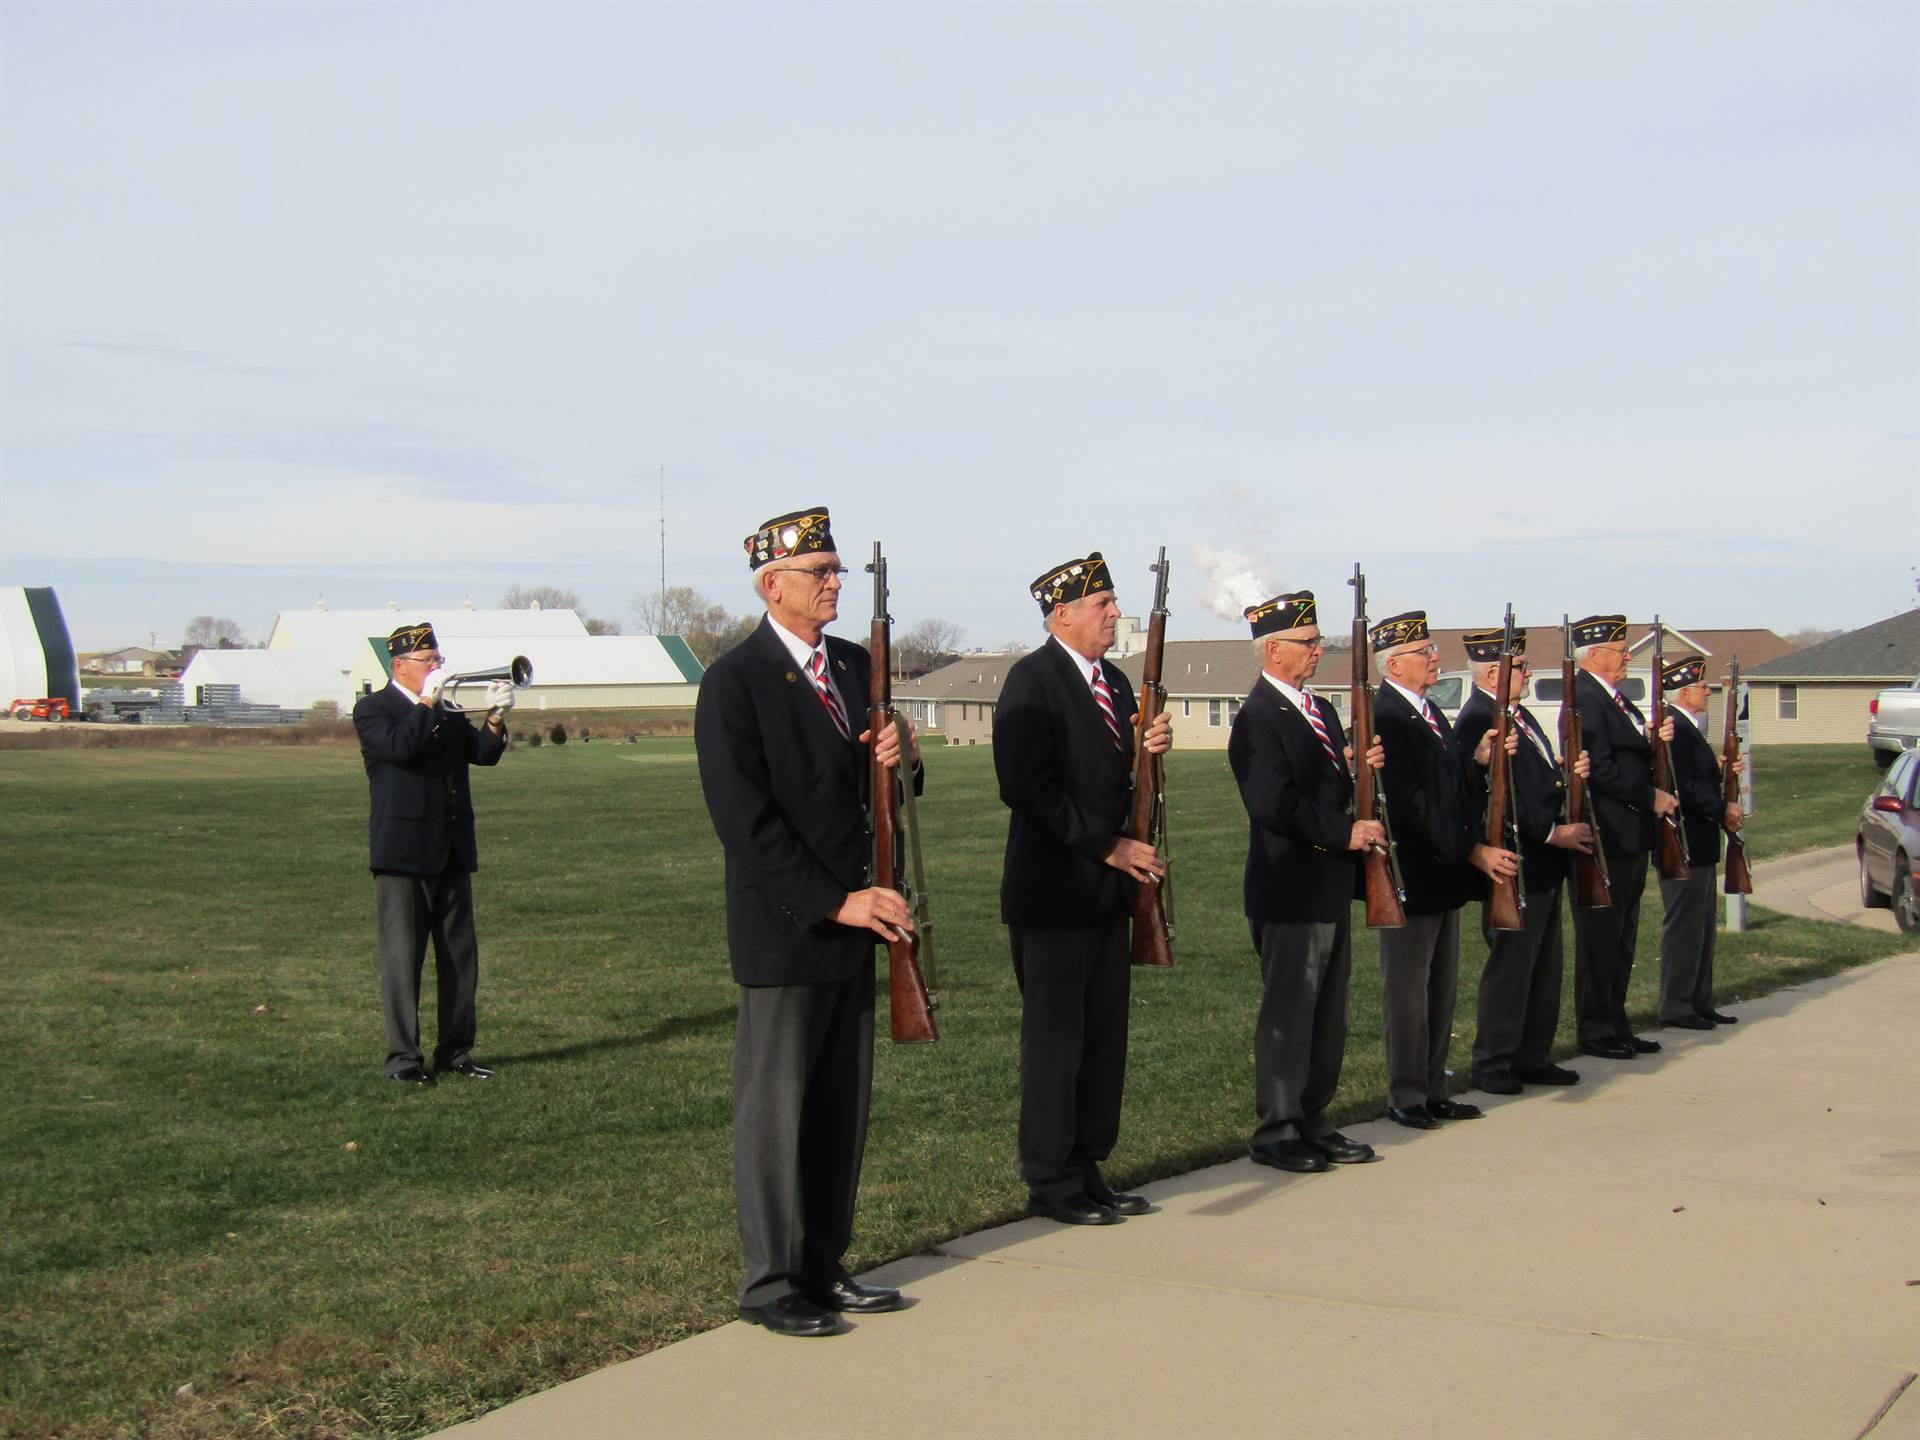 Dyersville Elementary Veteran playing taps with Firing squad standing guard